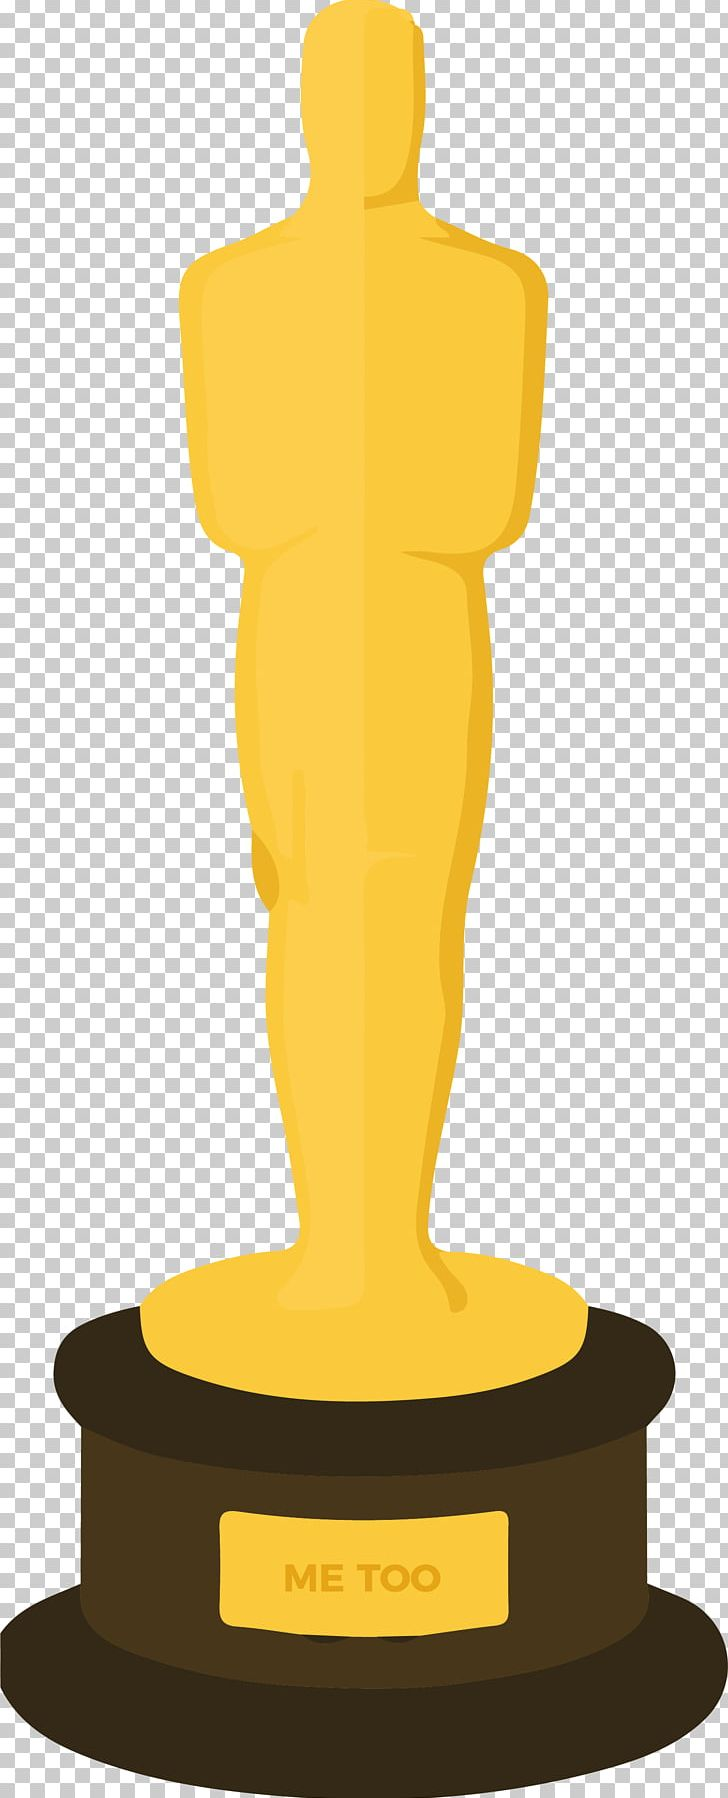 Academy Awards Computer Icons PNG, Clipart, 6th Academy Awards.